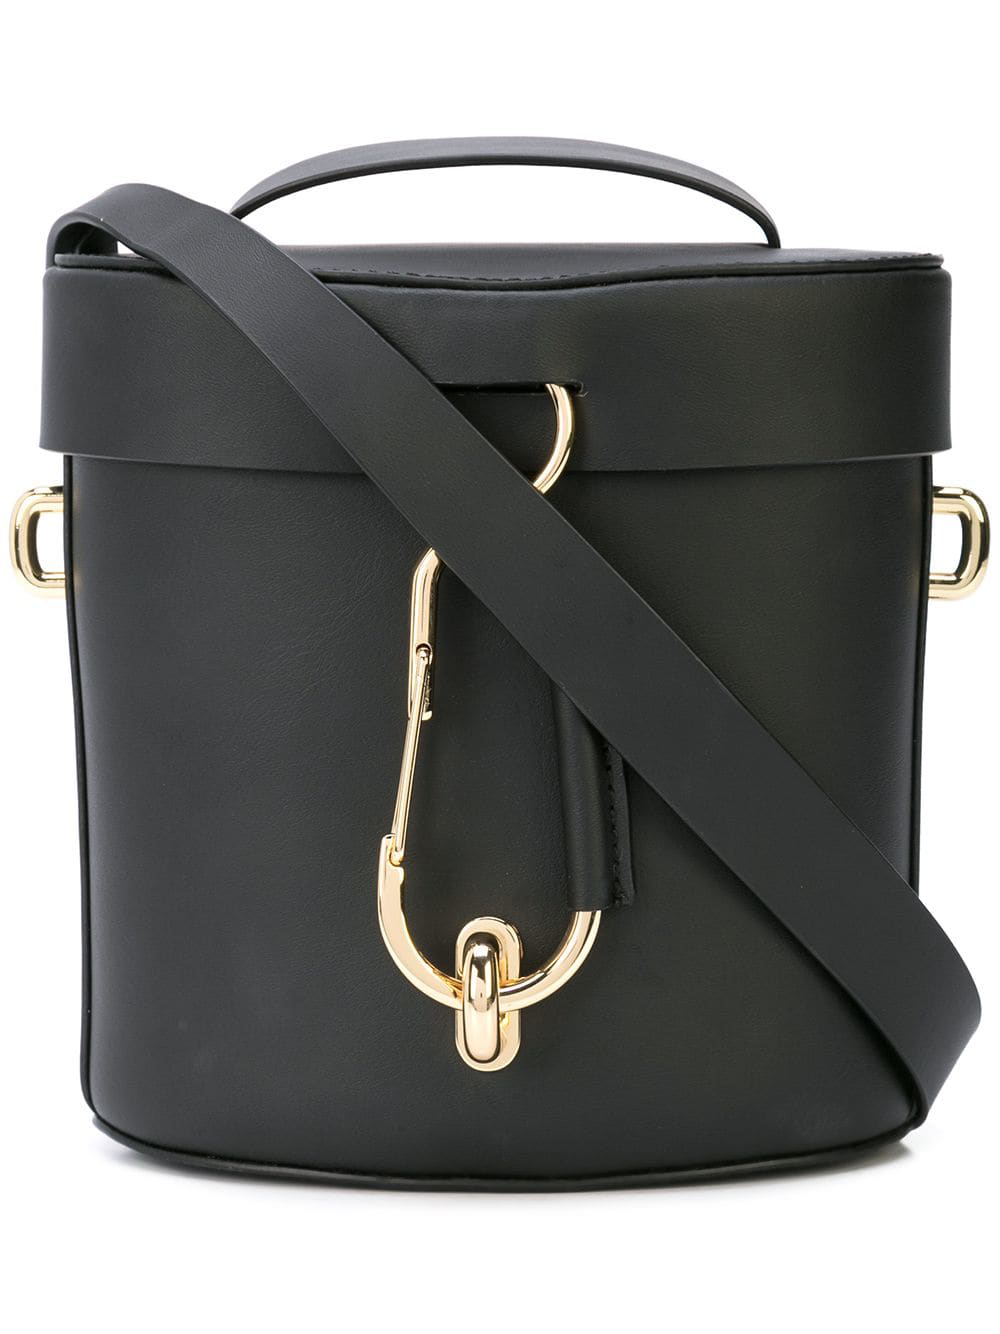 818a909527d8 Zac Zac Posen Belay Crossbody Bag - Black